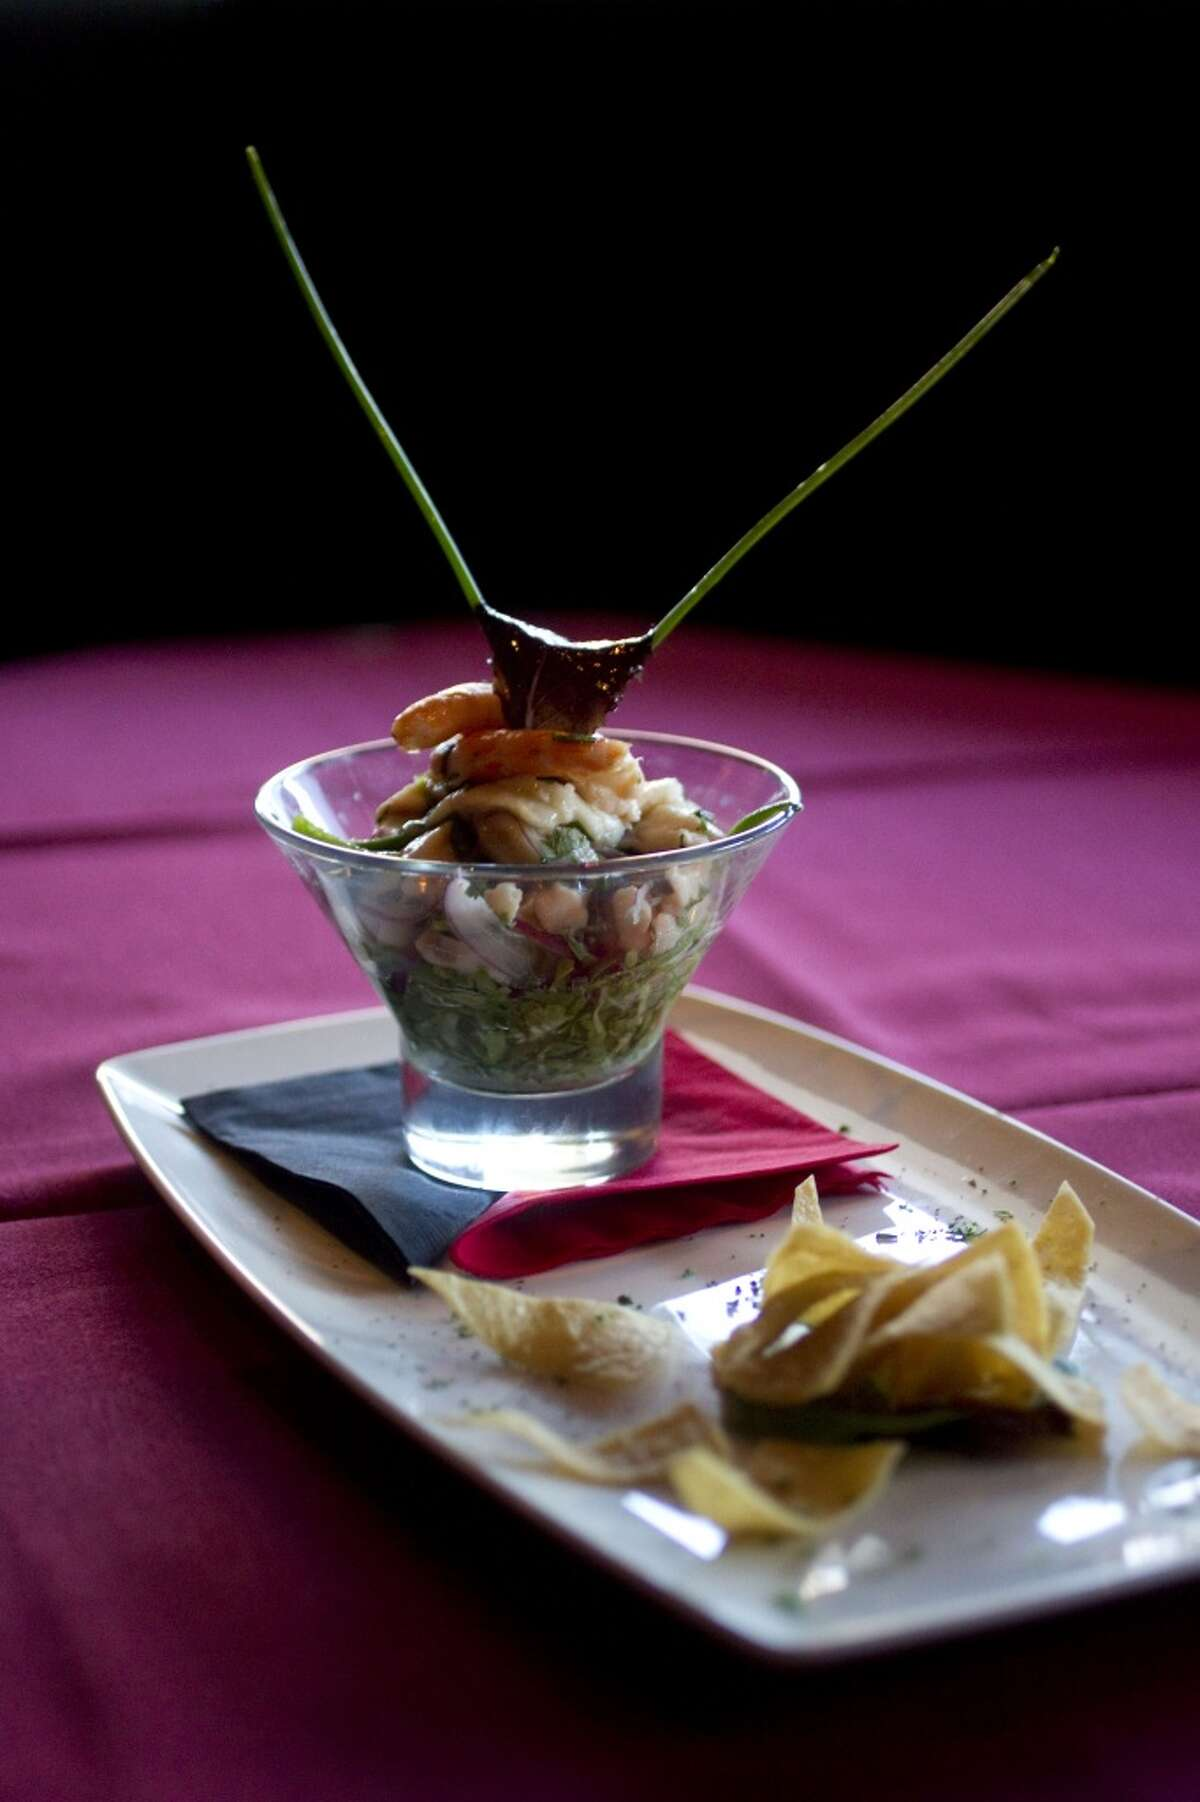 Ceviche at the Galleria neighborhood restaurant Tango and Malbec